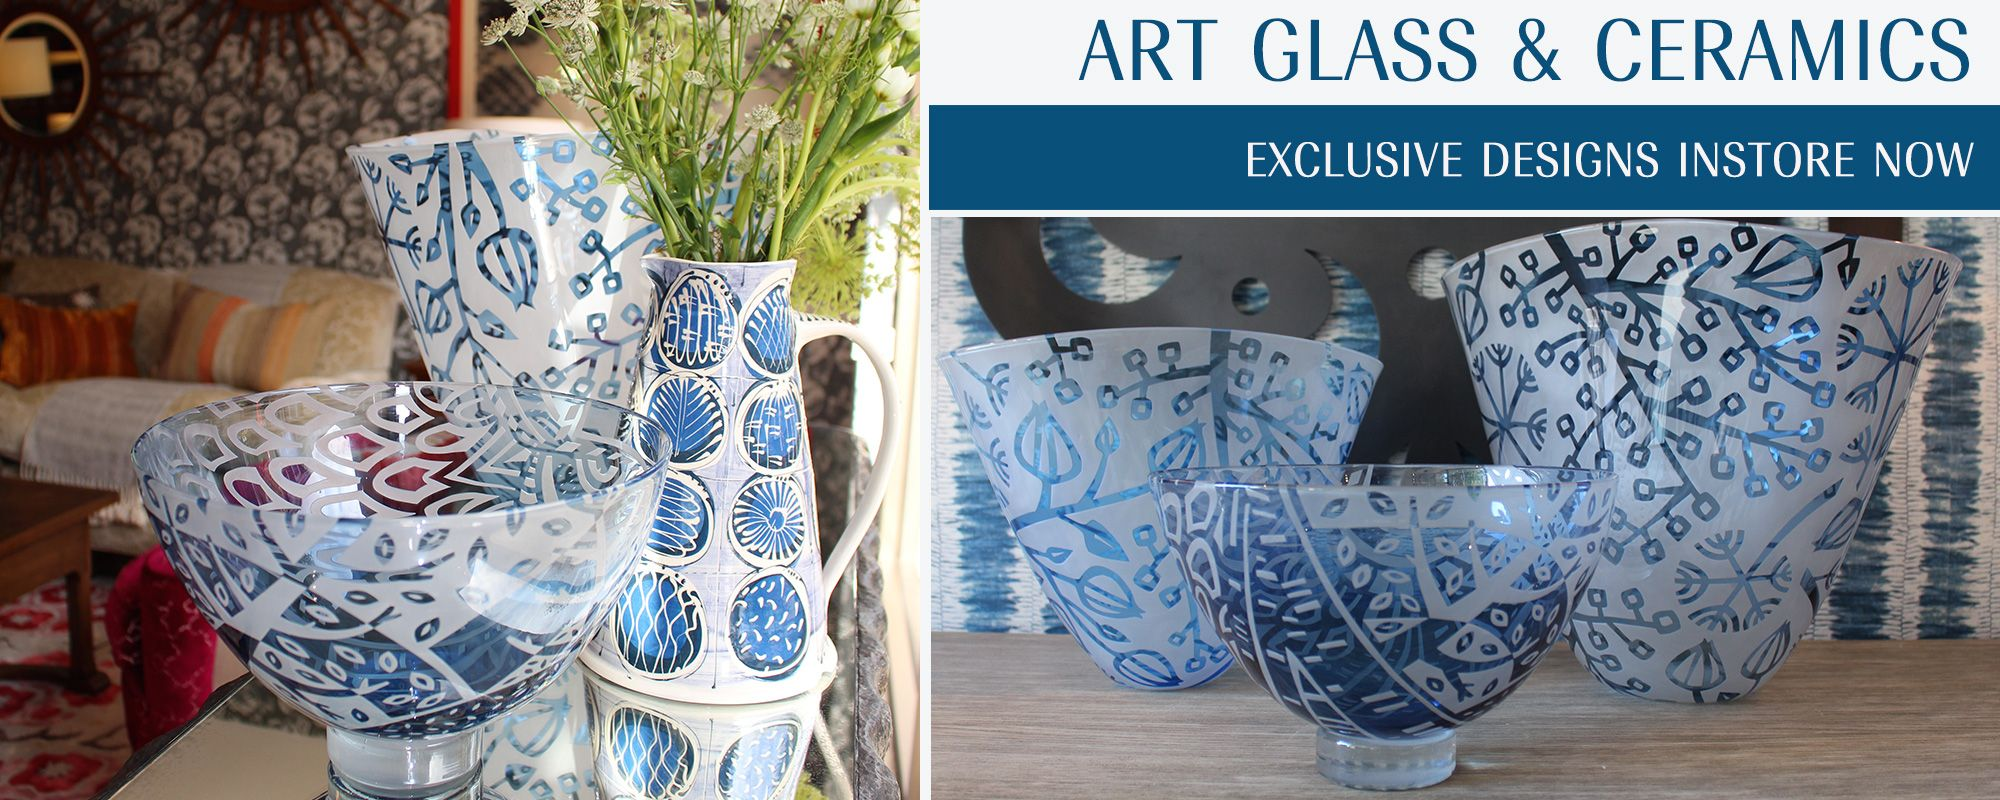 Art Glass & Ceramics